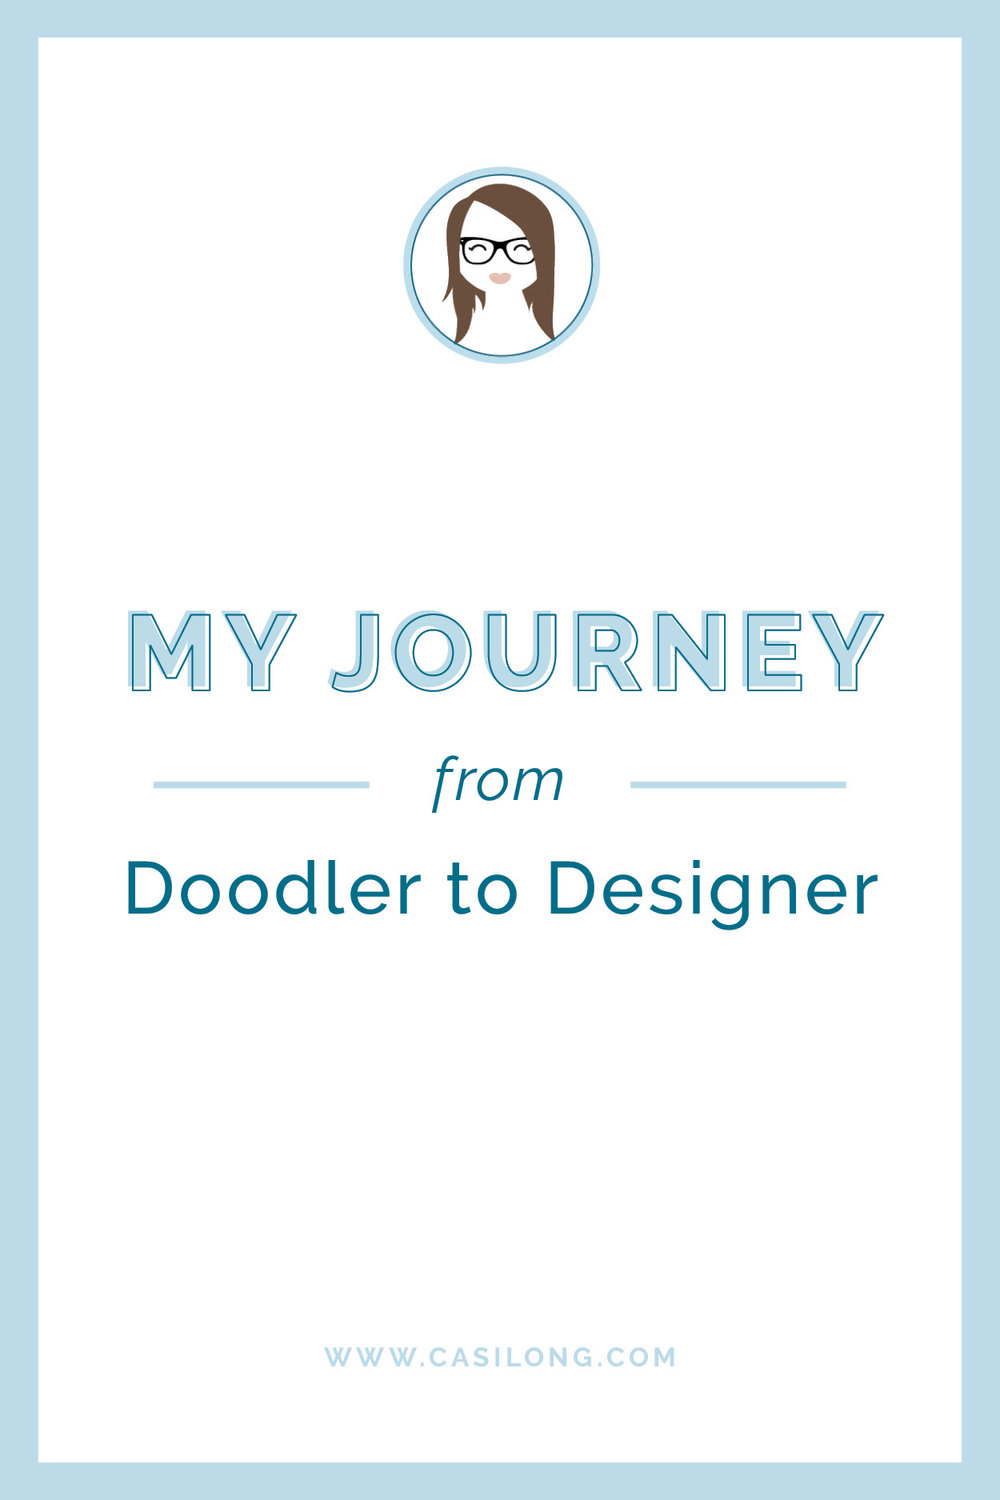 My Journey from doodler to designer | casilong.com/blog